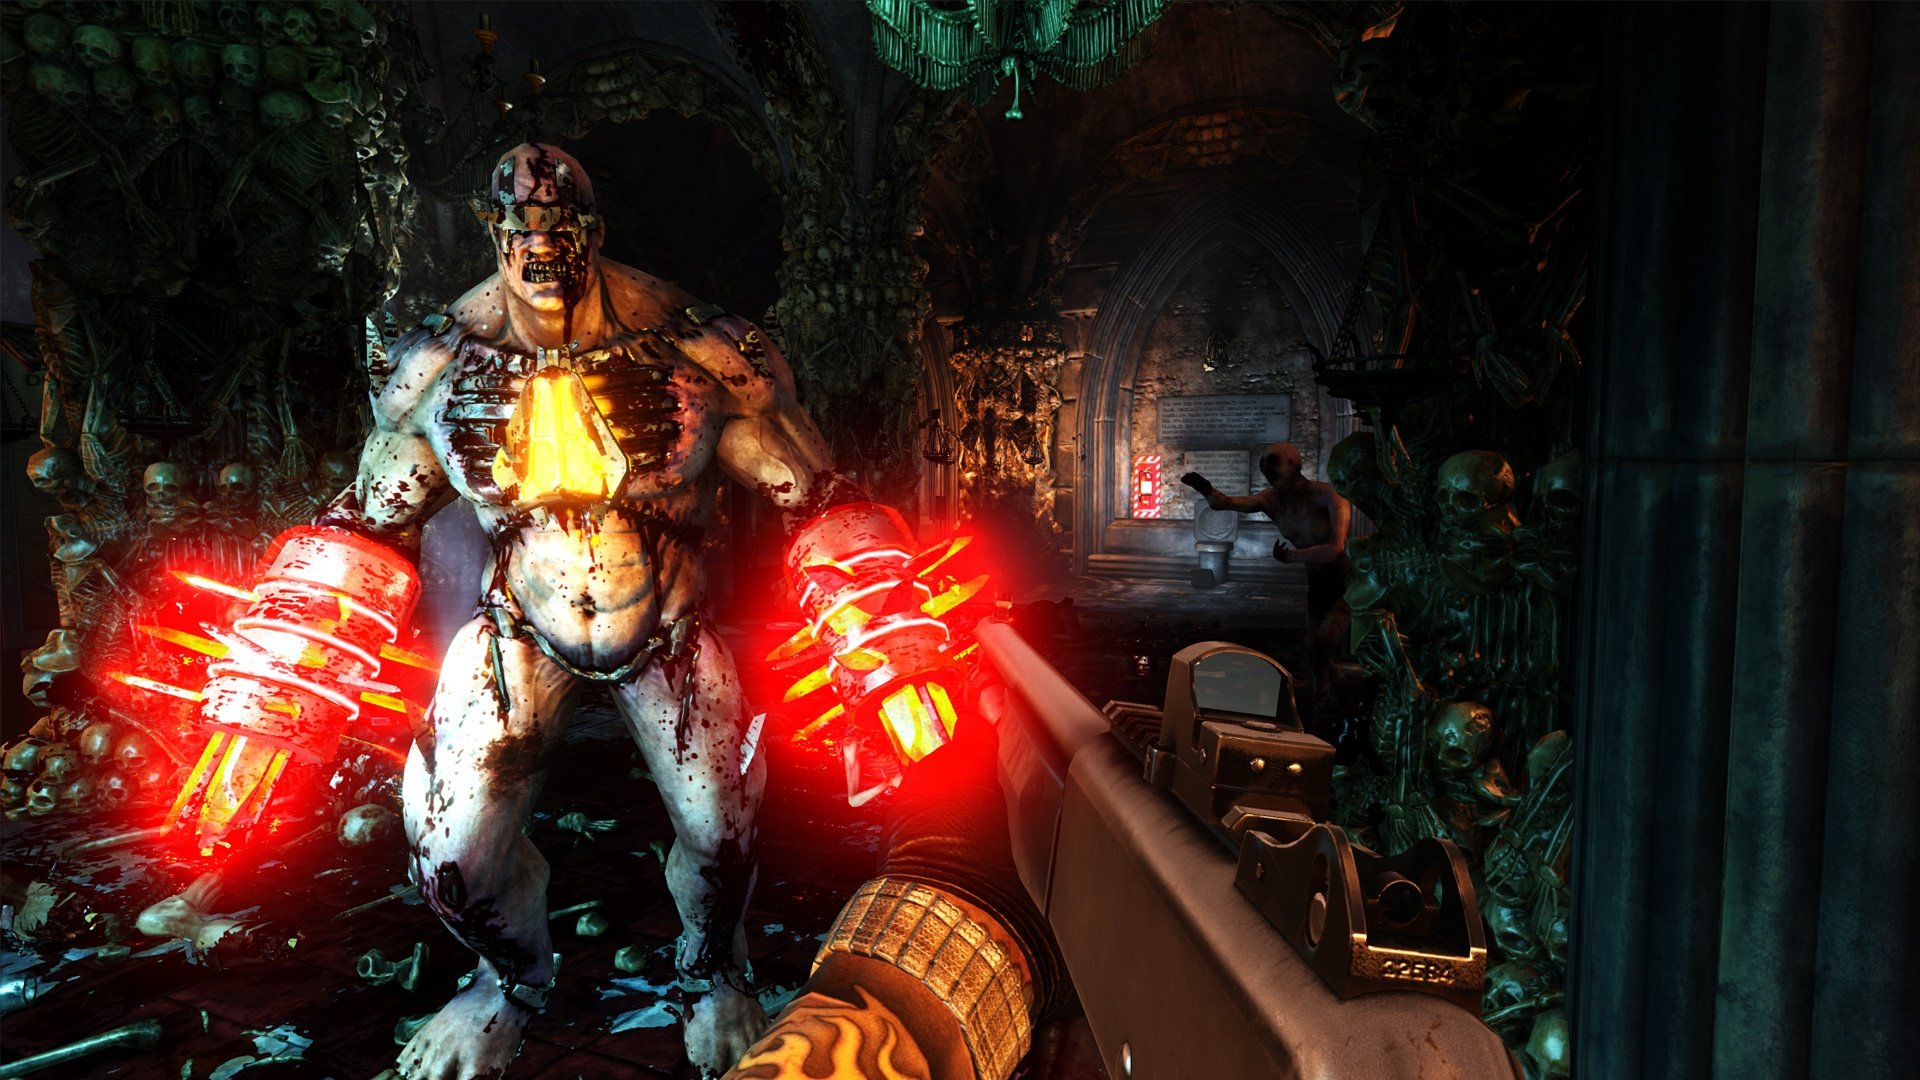 Action, adventure, Deep Silver, Horror, Killing Floor, Killing Floor 2, Killing Floor: Double Feature, Killing Floor: Double Feature Review, Killing Floor: Incursion, PlayStation VR, PS4, PS4 Review, PSVR, PSVR Review, Shooter, Tripwire Interactive